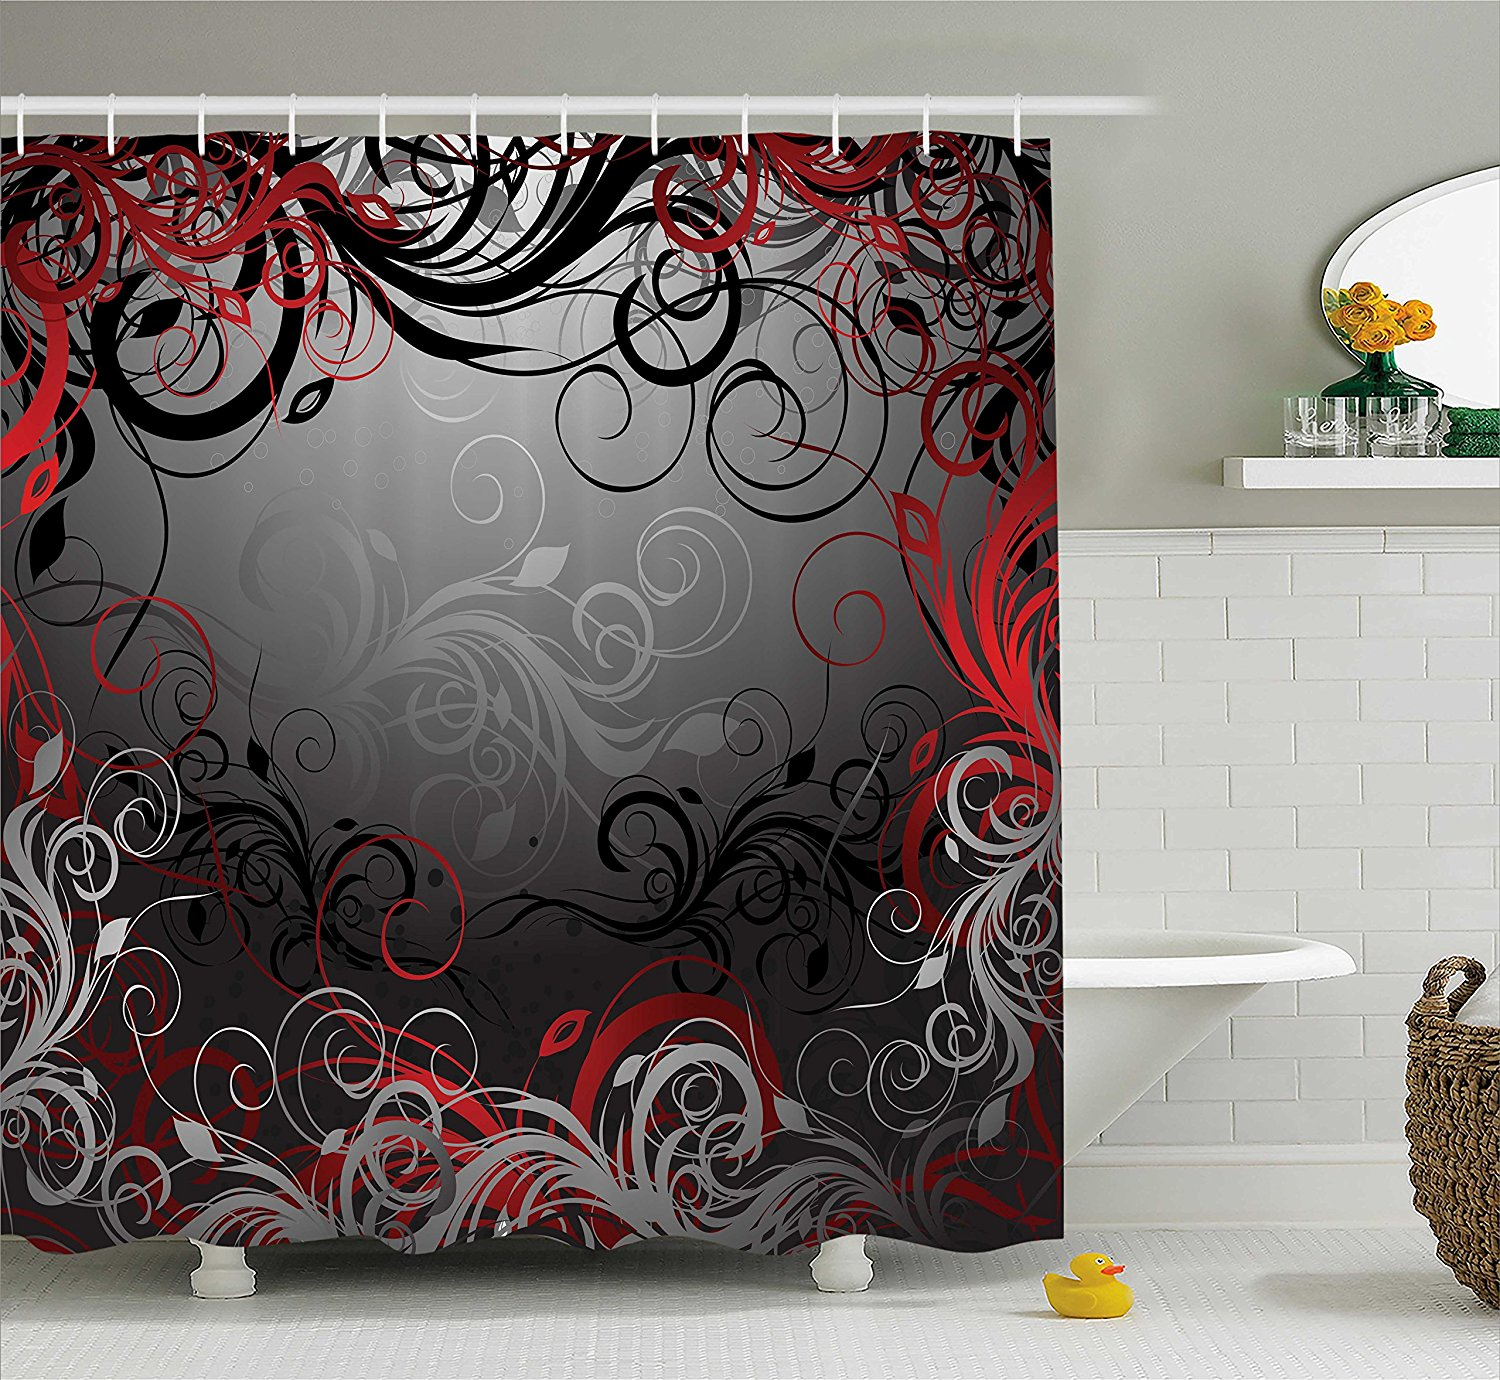 Red And Black Shower Curtain Set Us 12 8 30 Off Red And Black Shower Curtain Mystic Magical Forest Inspired Floral Swirls Leaves Bathroom Decor Set In Shower Curtains From Home